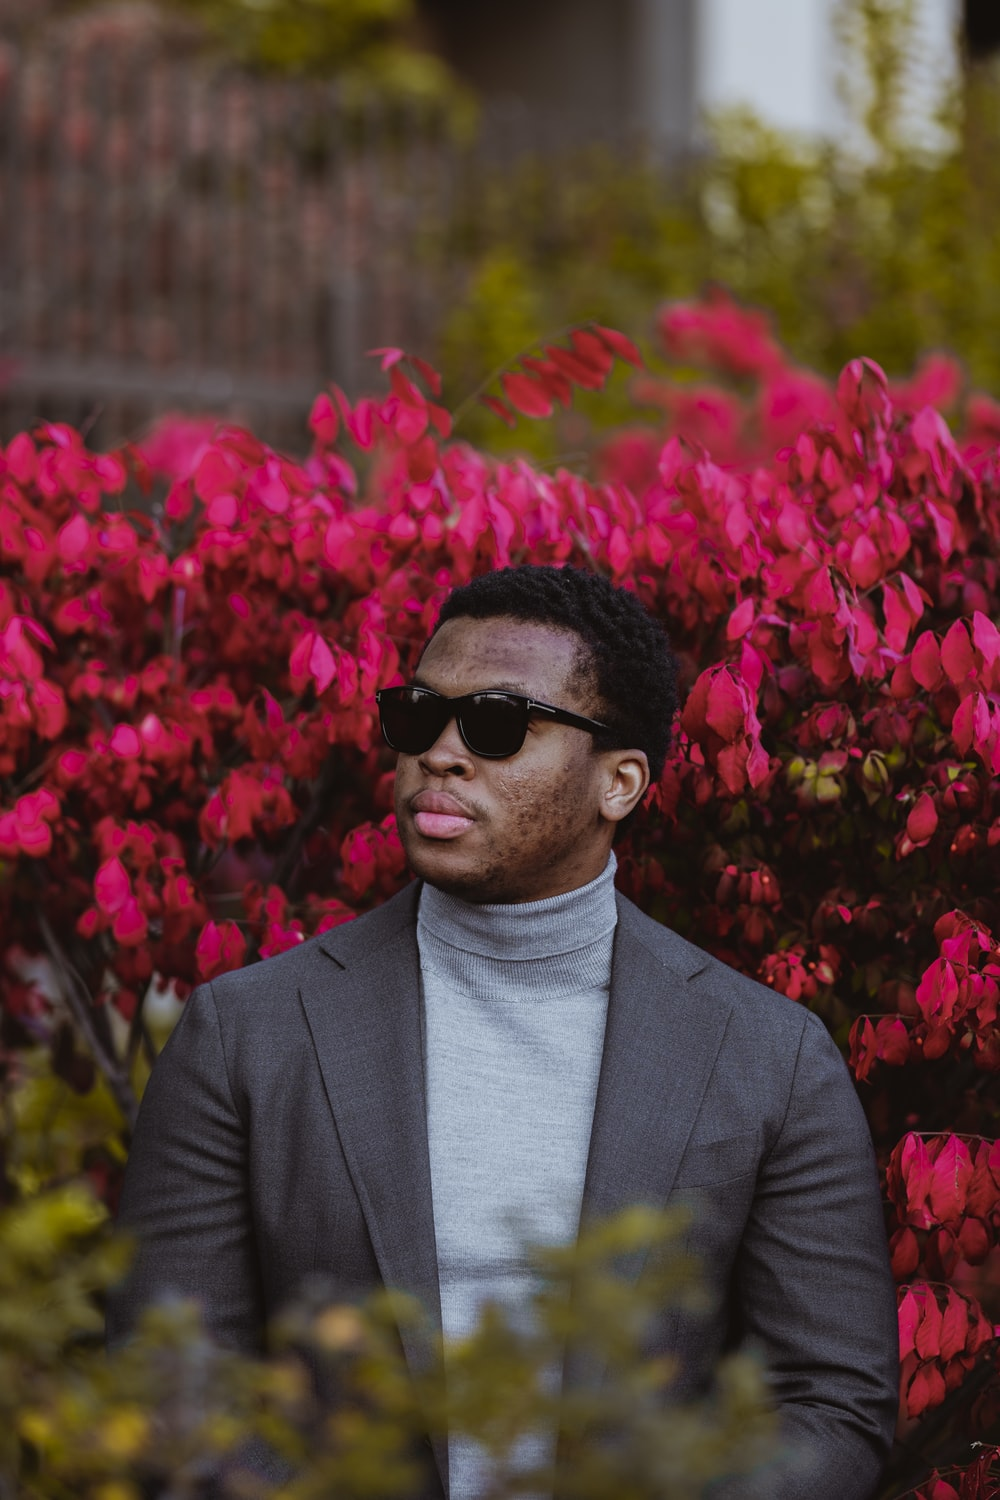 man in black suit standing near red flowers